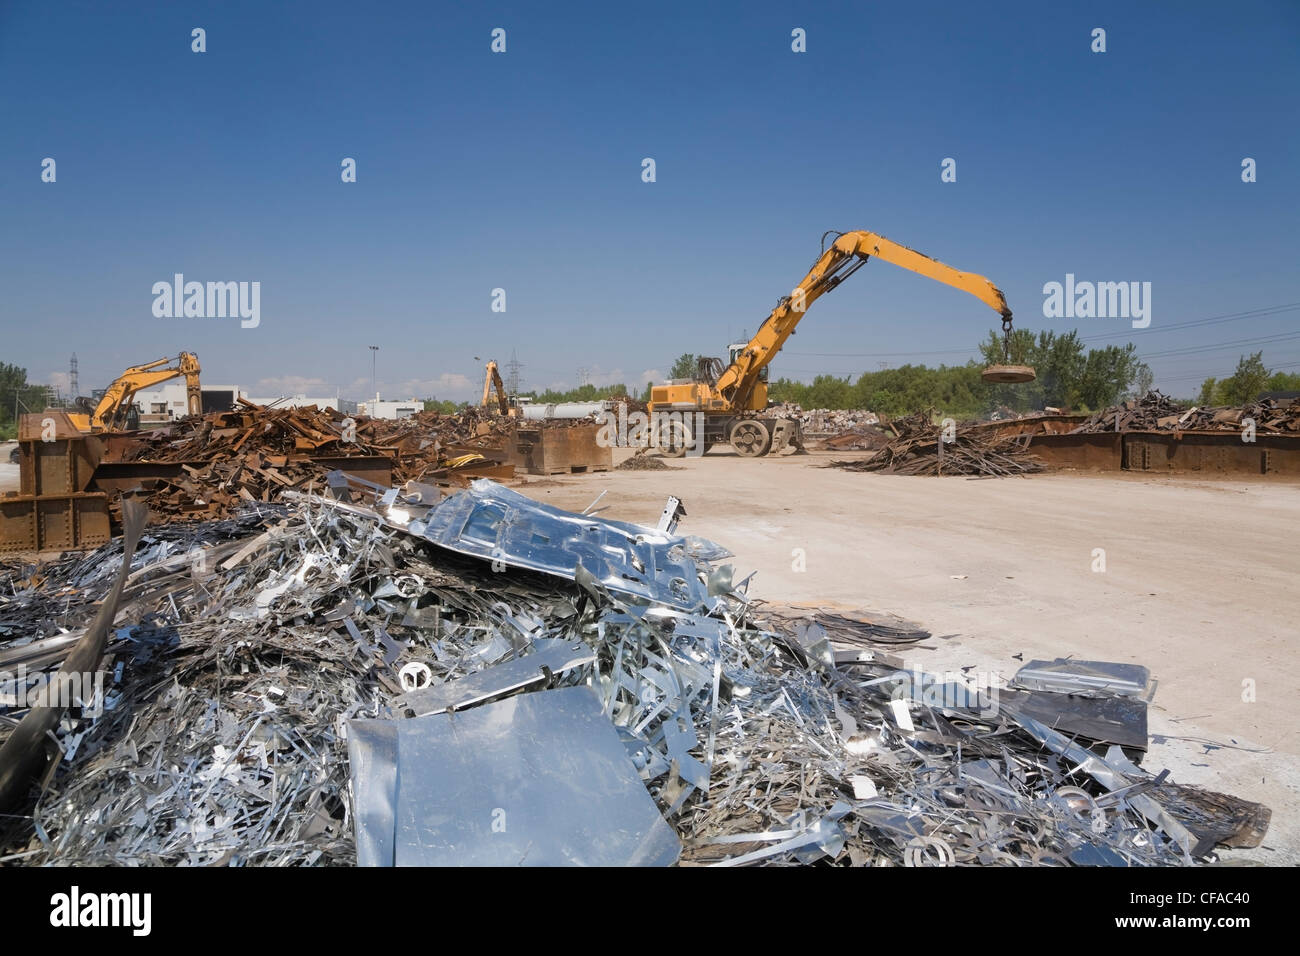 Material handler fitted with a magnet moving a pile of ferous metal at a scrap metal recycling yard, Quebec, Canada. - Stock Image